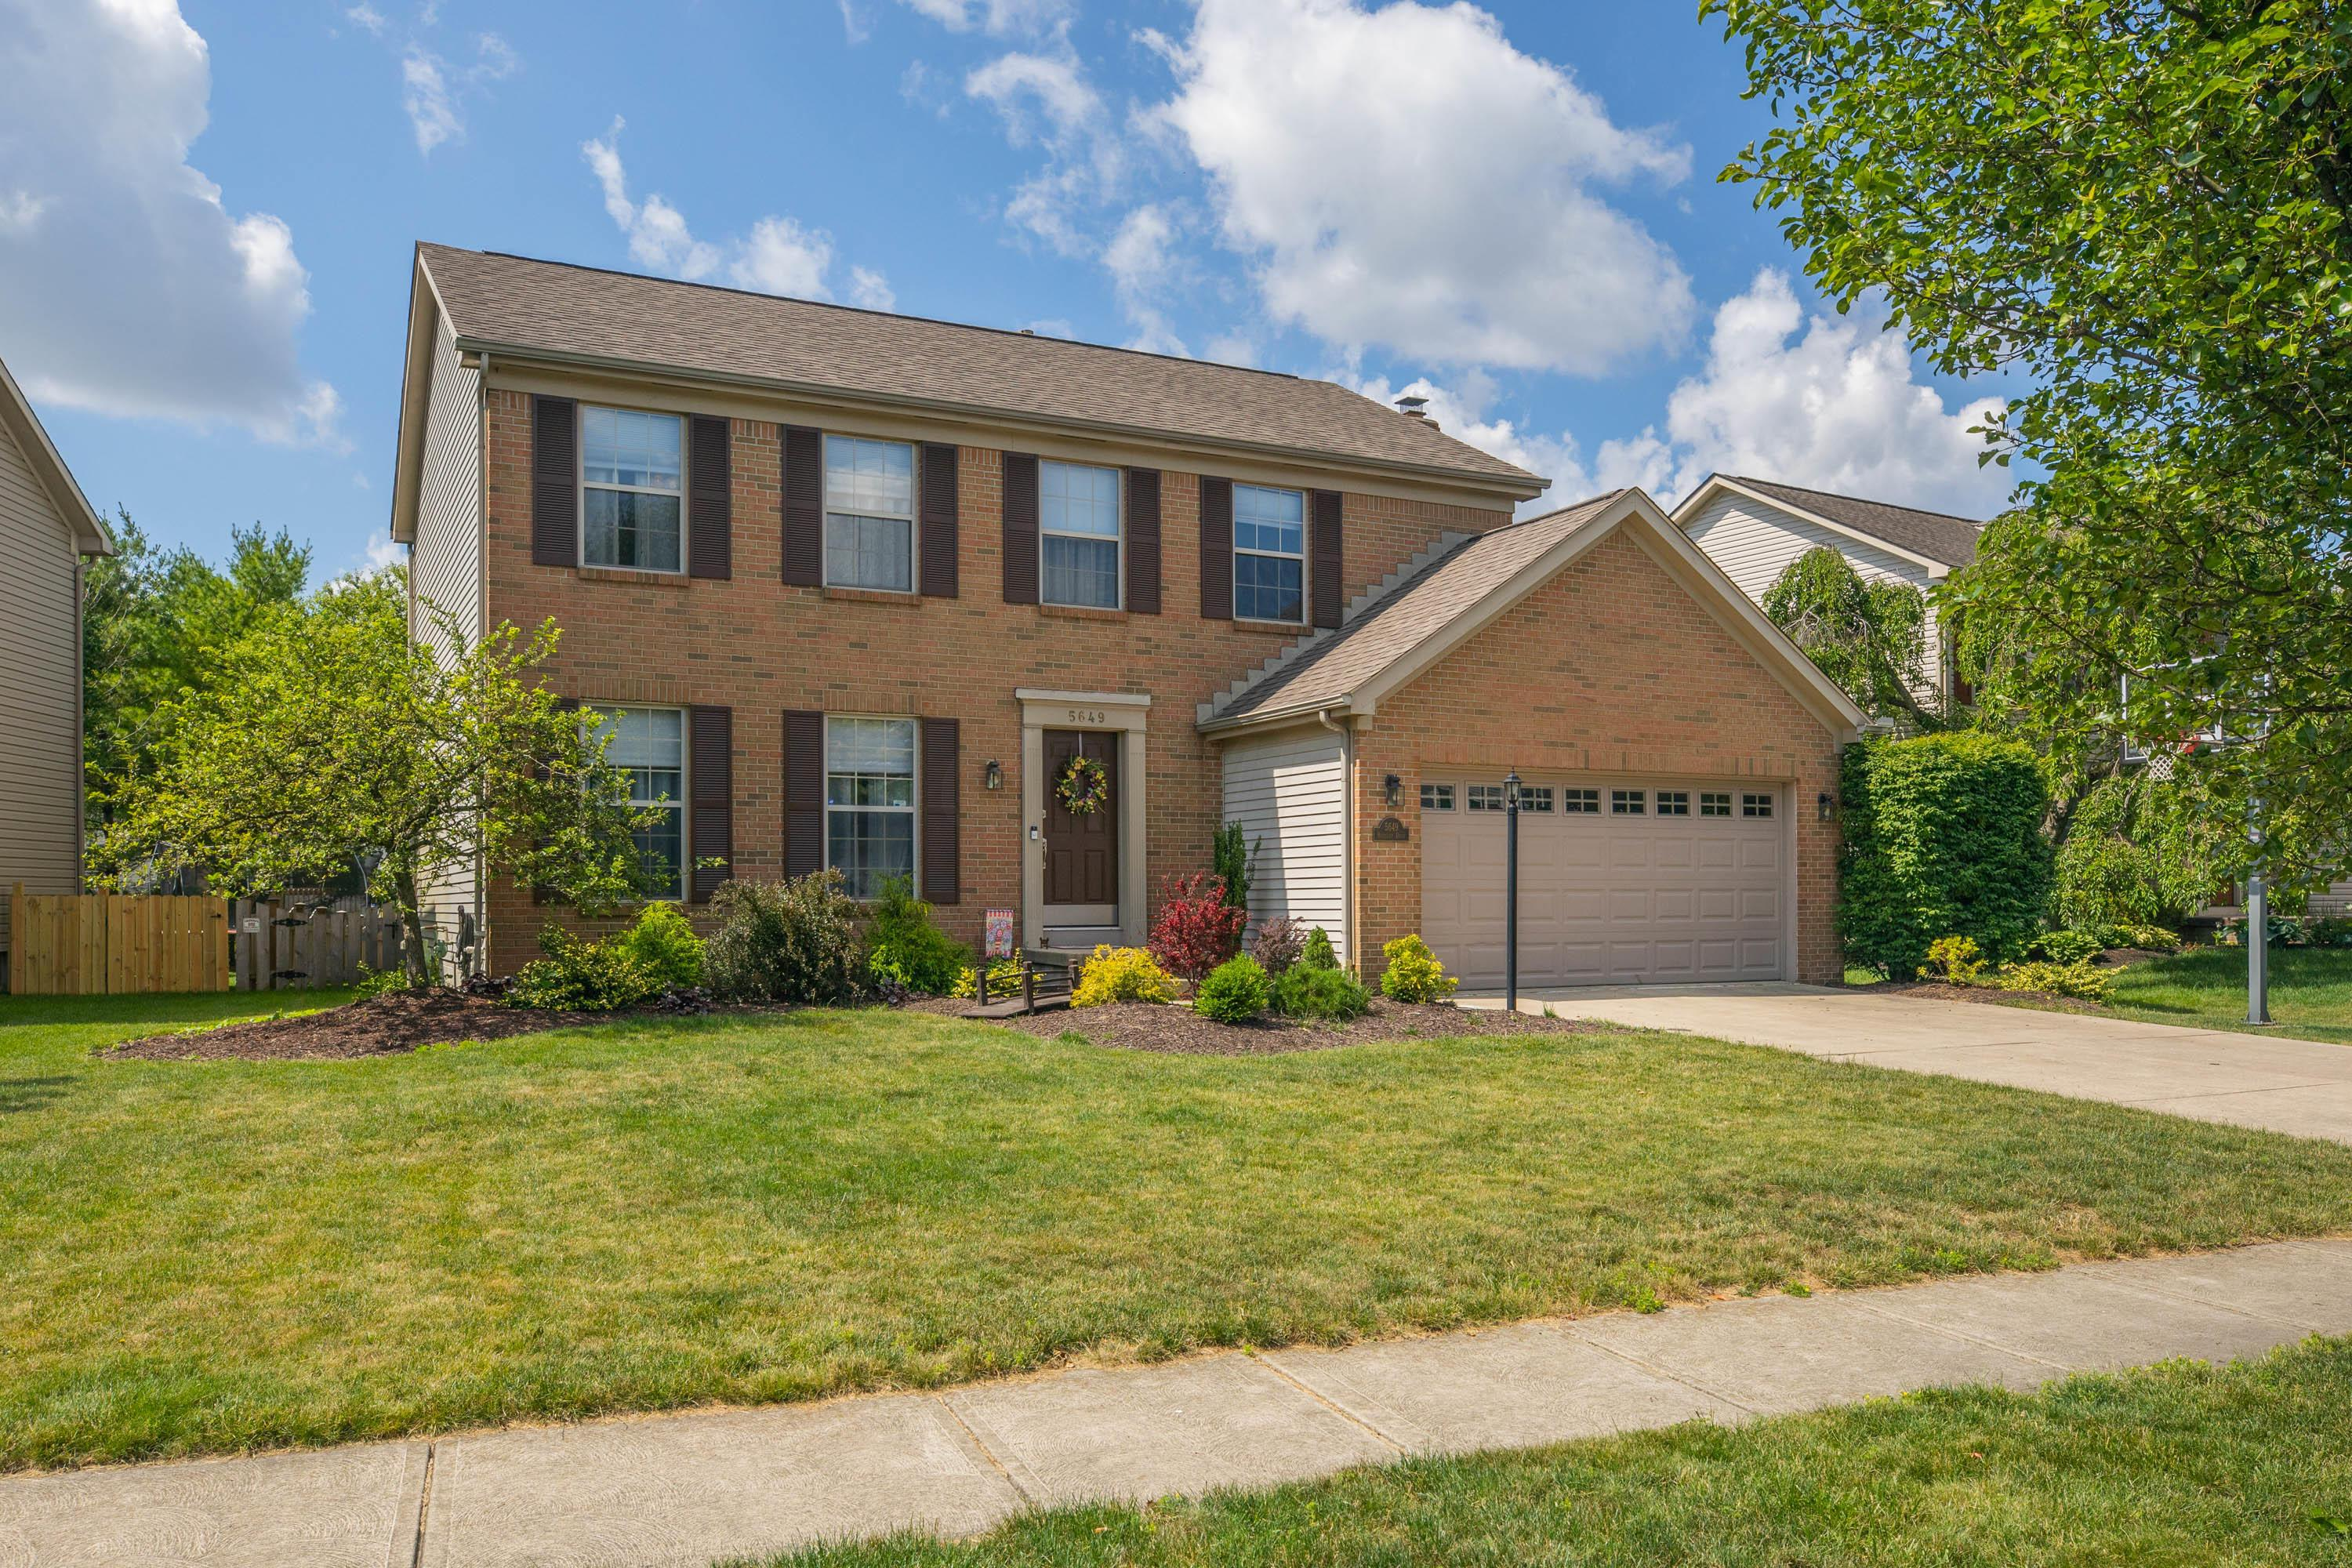 5649 Rosecliff Drive, Hilliard, Ohio 43026, 4 Bedrooms Bedrooms, ,3 BathroomsBathrooms,Residential,For Sale,Rosecliff,220020590